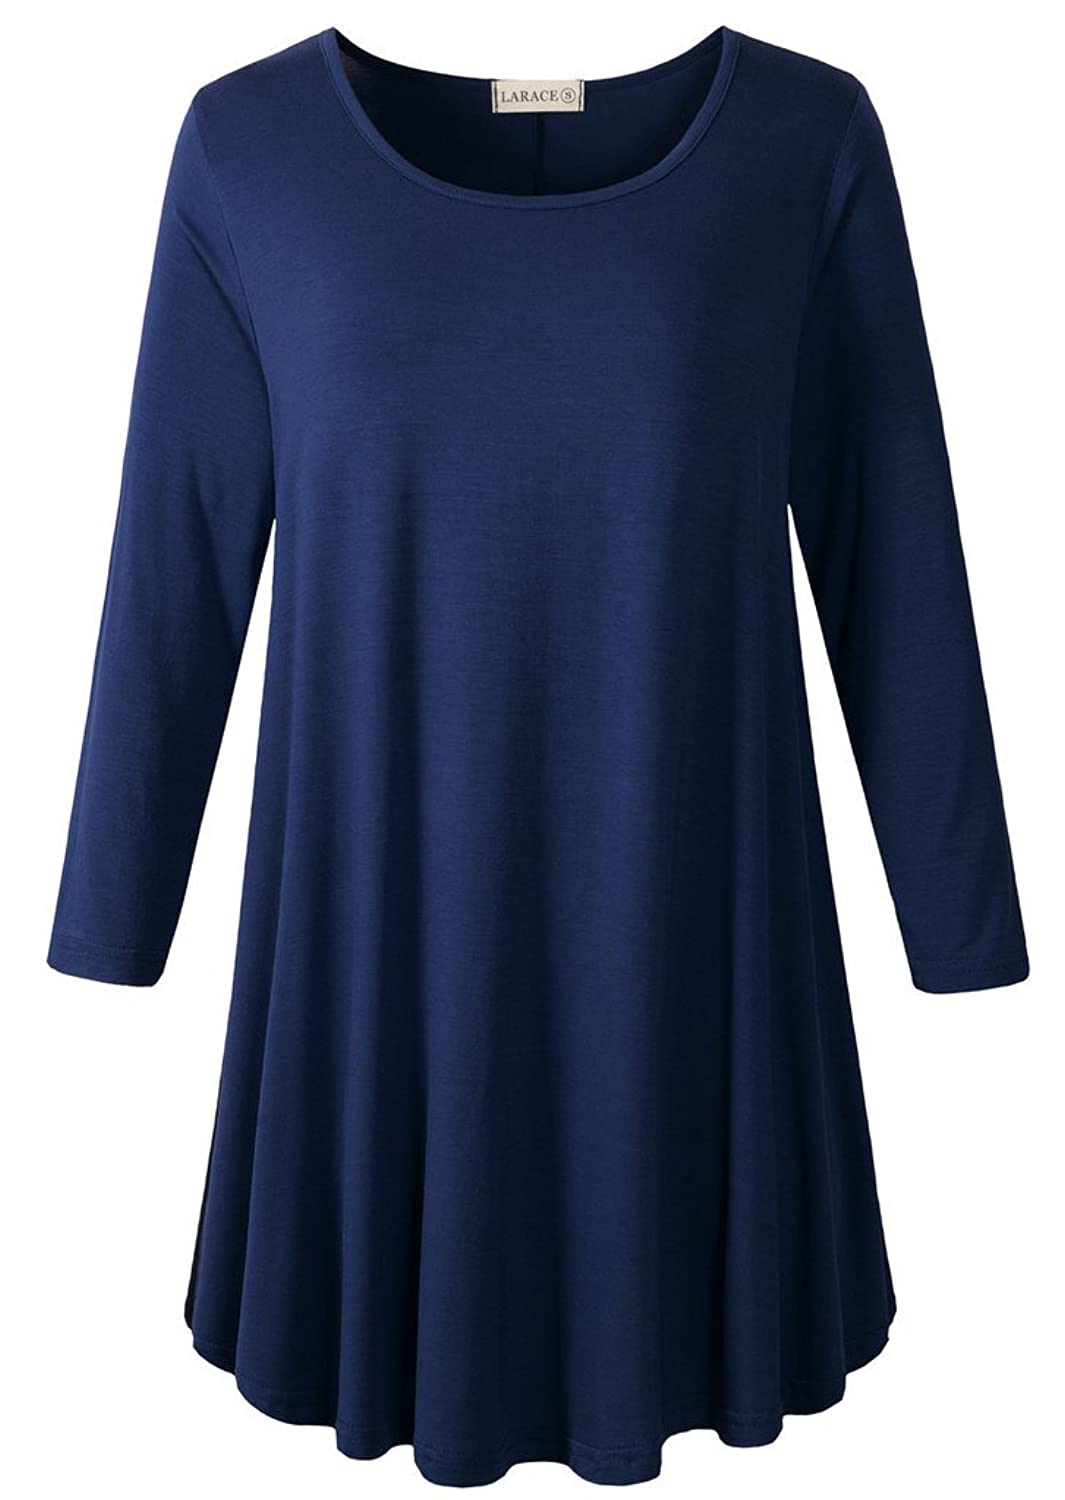 1dd6a2dd57 Women 3 4 Sleeve Tunic Top Loose Fit Flare T-Shirt Steel Blue